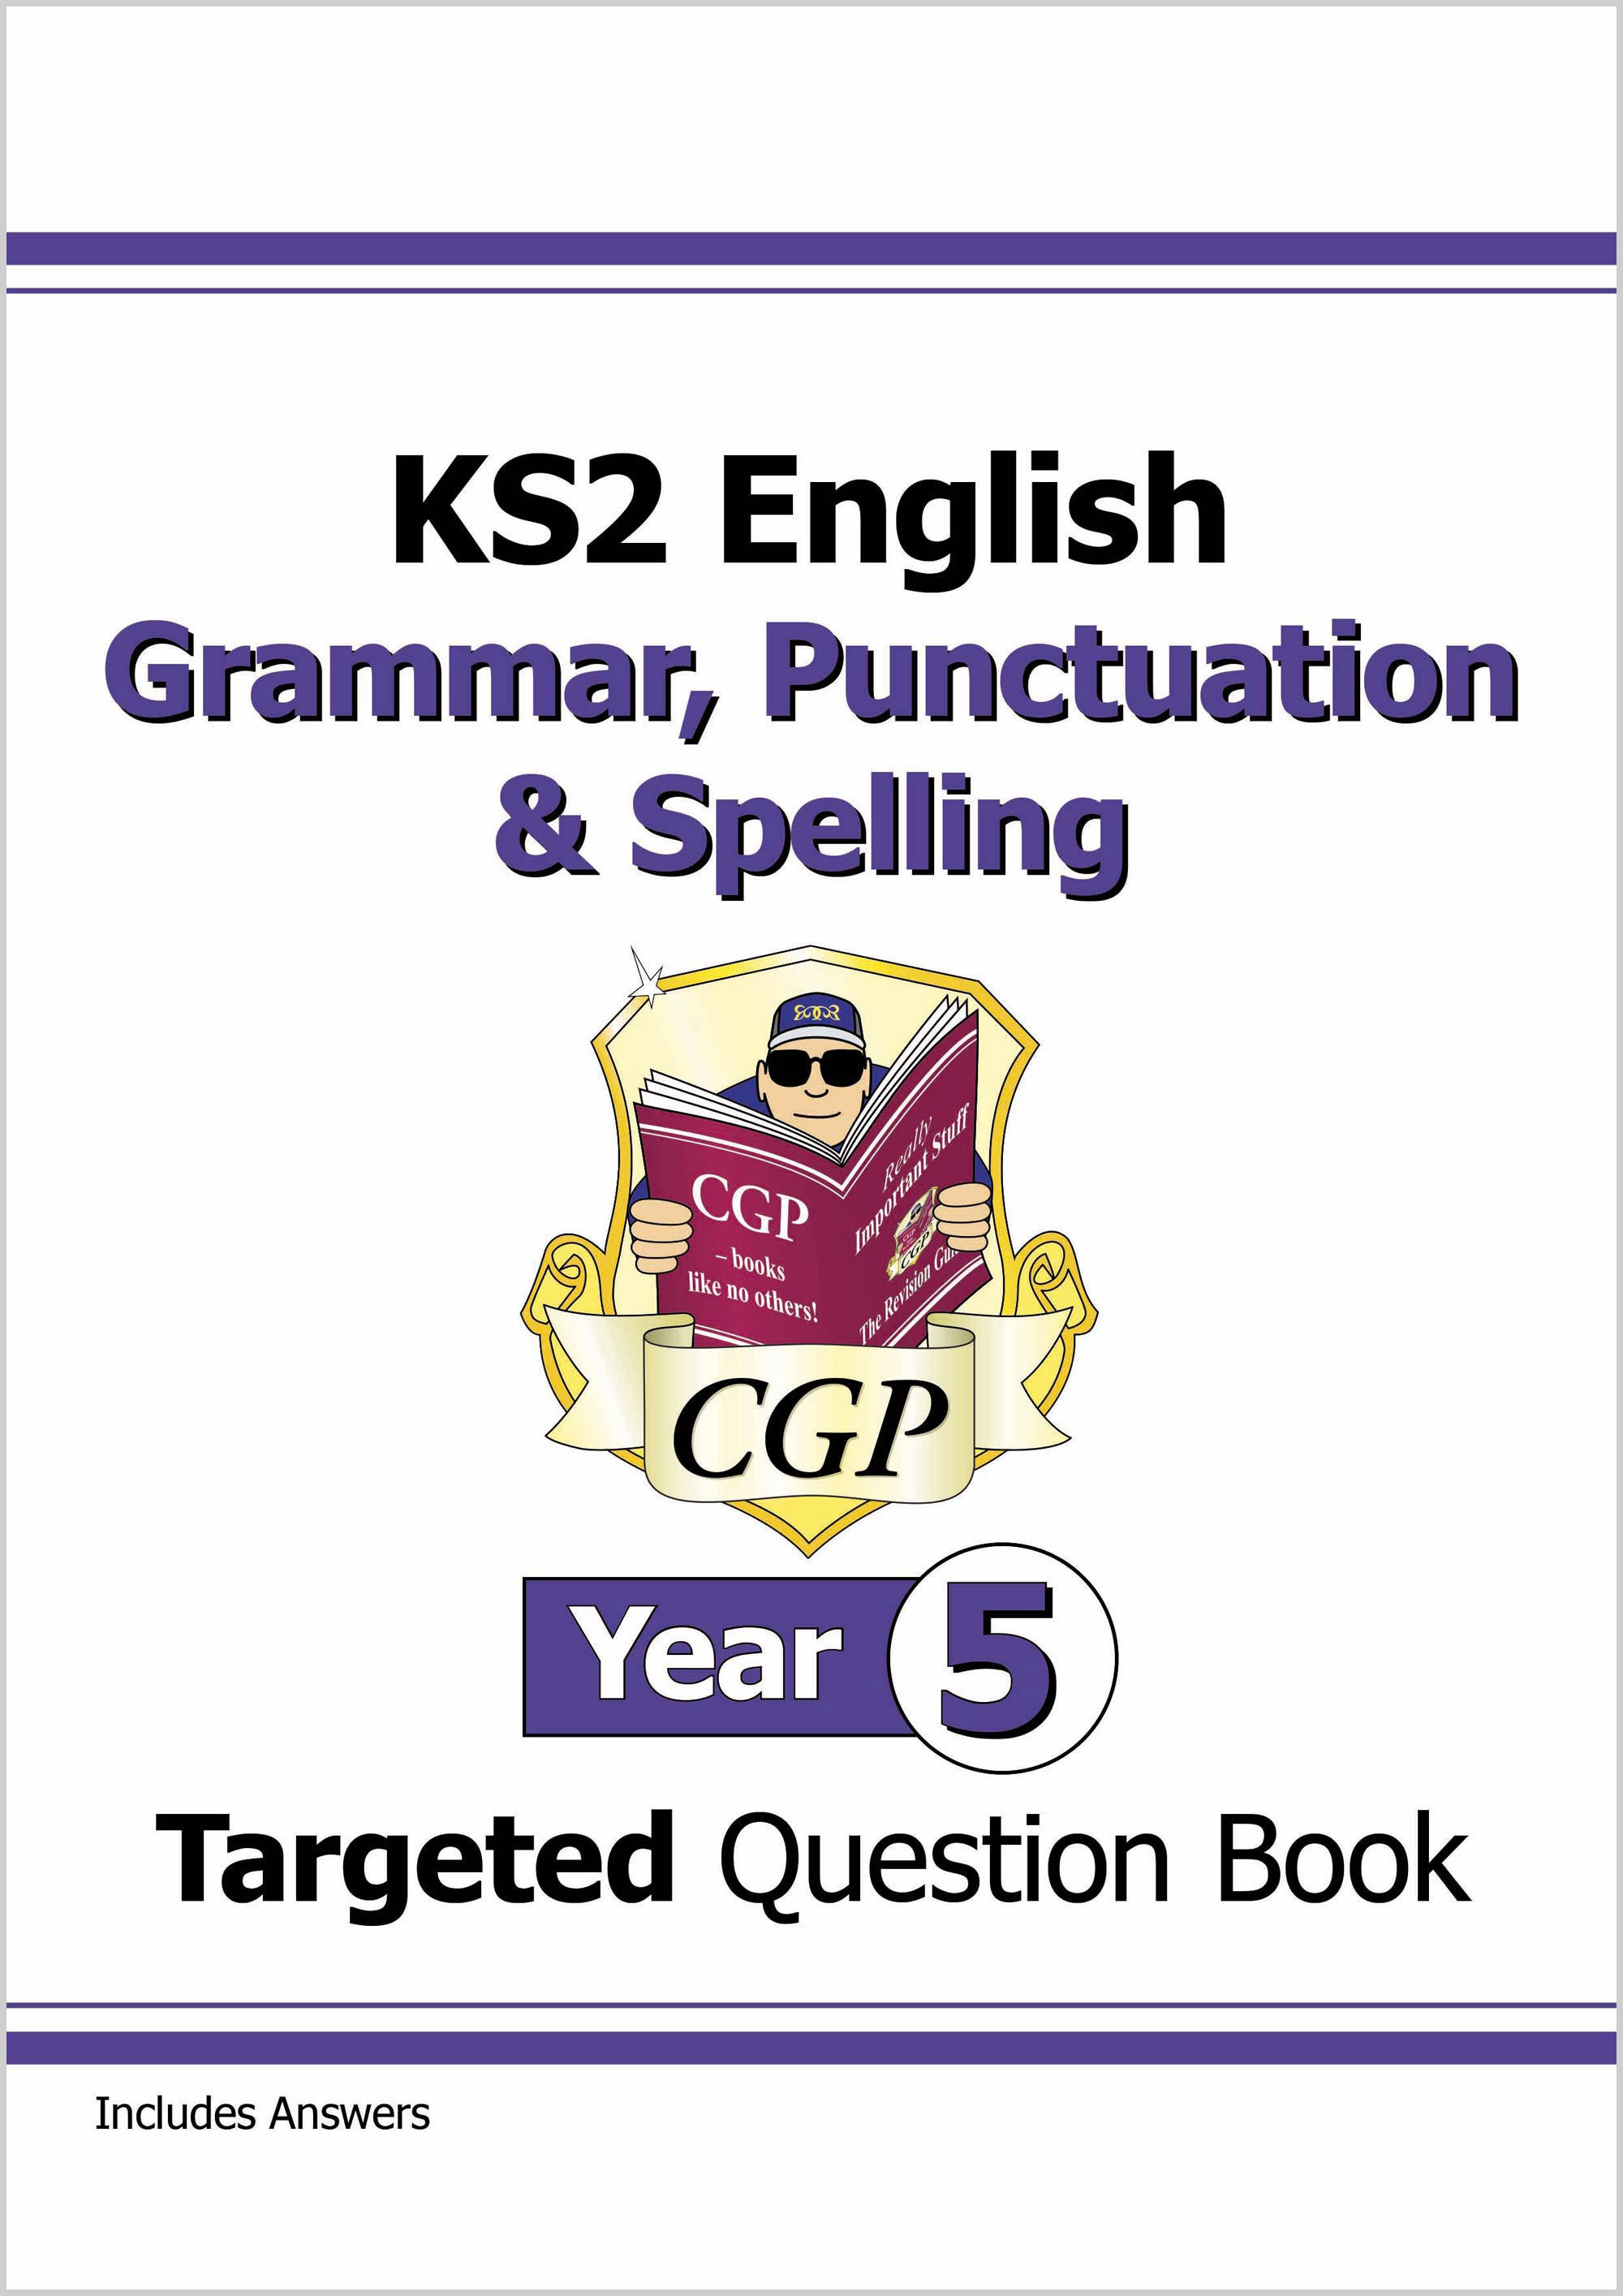 E5W22DK - KS2 English Targeted Question Book: Grammar, Punctuation & Spelling - Year 5